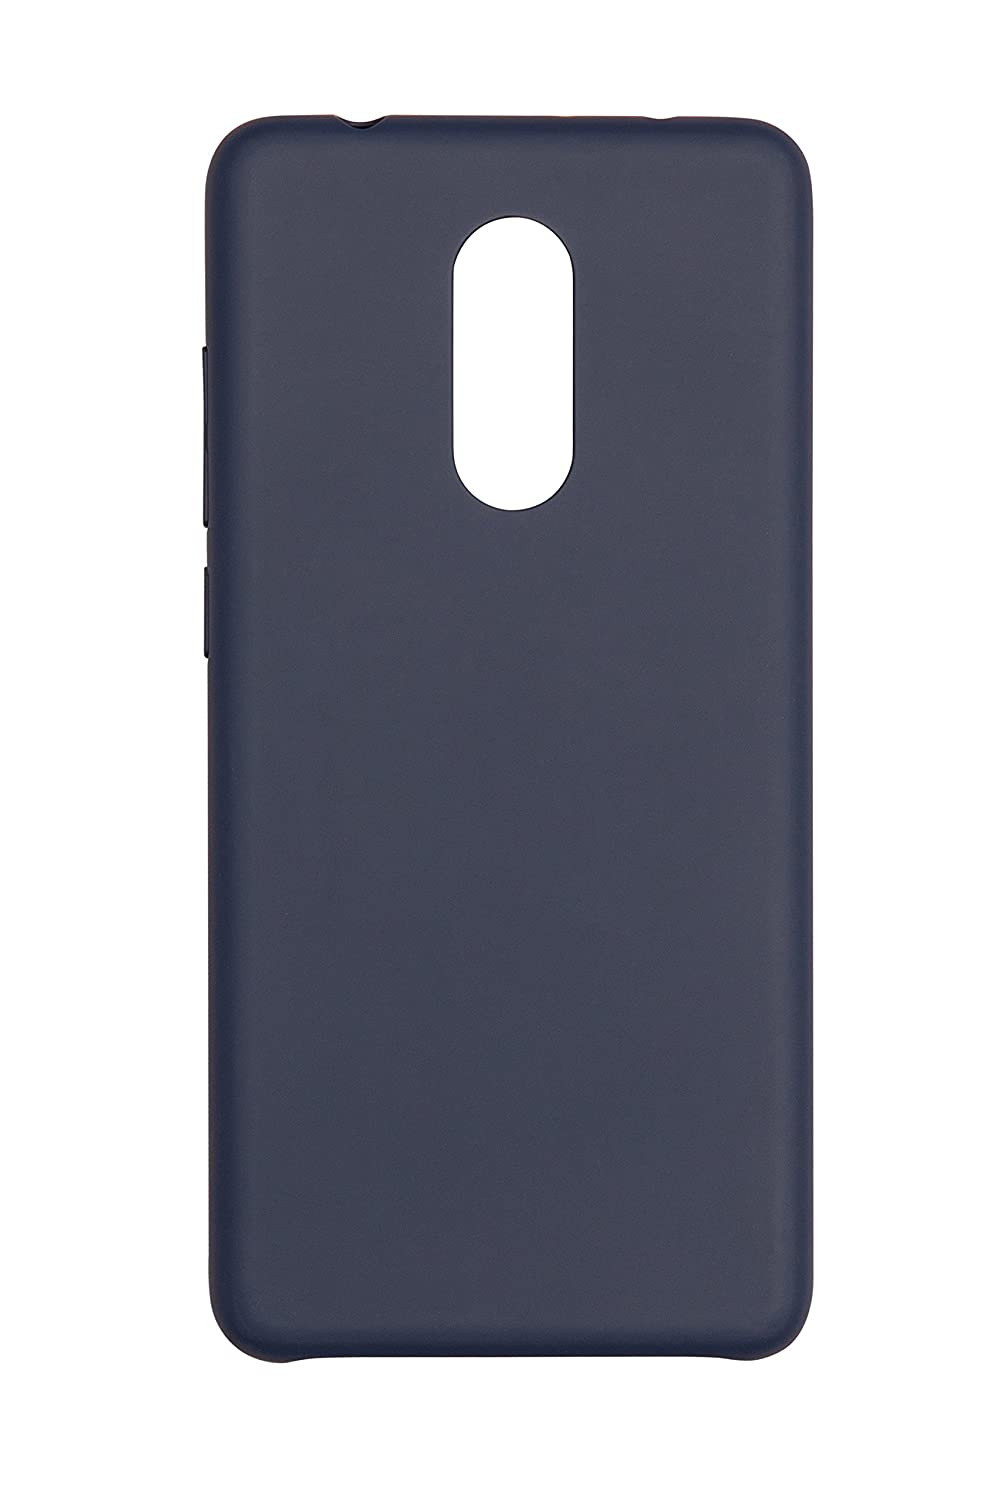 Redmi Original Hard Back Cover for Redmi 5 (Blue)